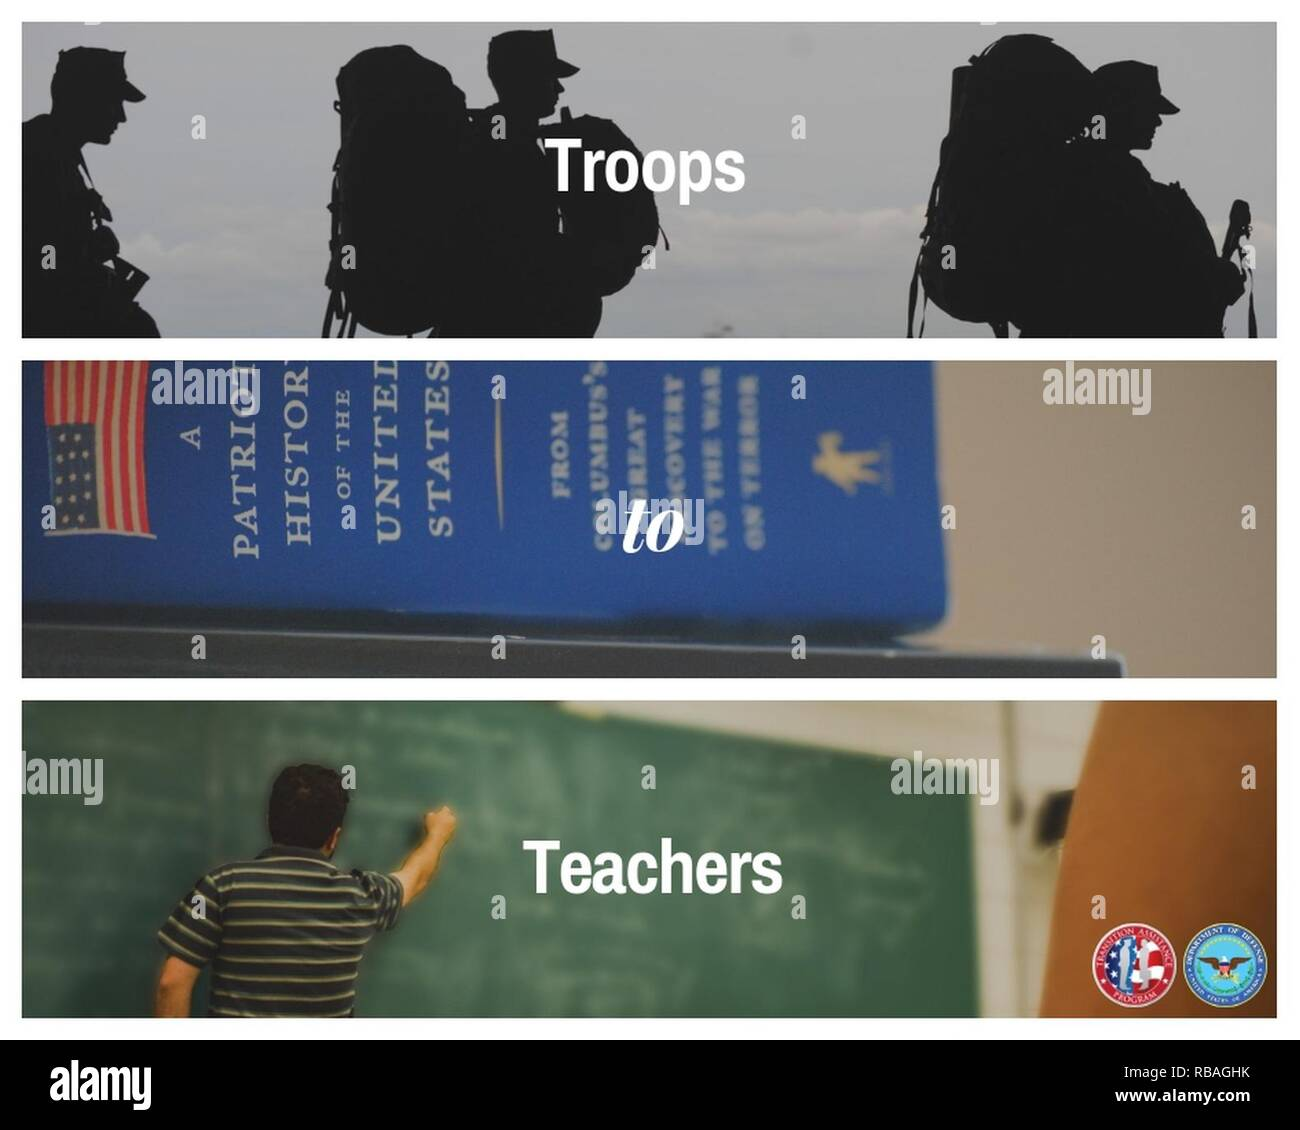 Troops to Teachers (TTT) is a Department of Defense () program that helps put you on the best pathway to begin your next mission of becoming a K-12 public, charter or Bureau of Indian Affairs school teacher. Stock Photo